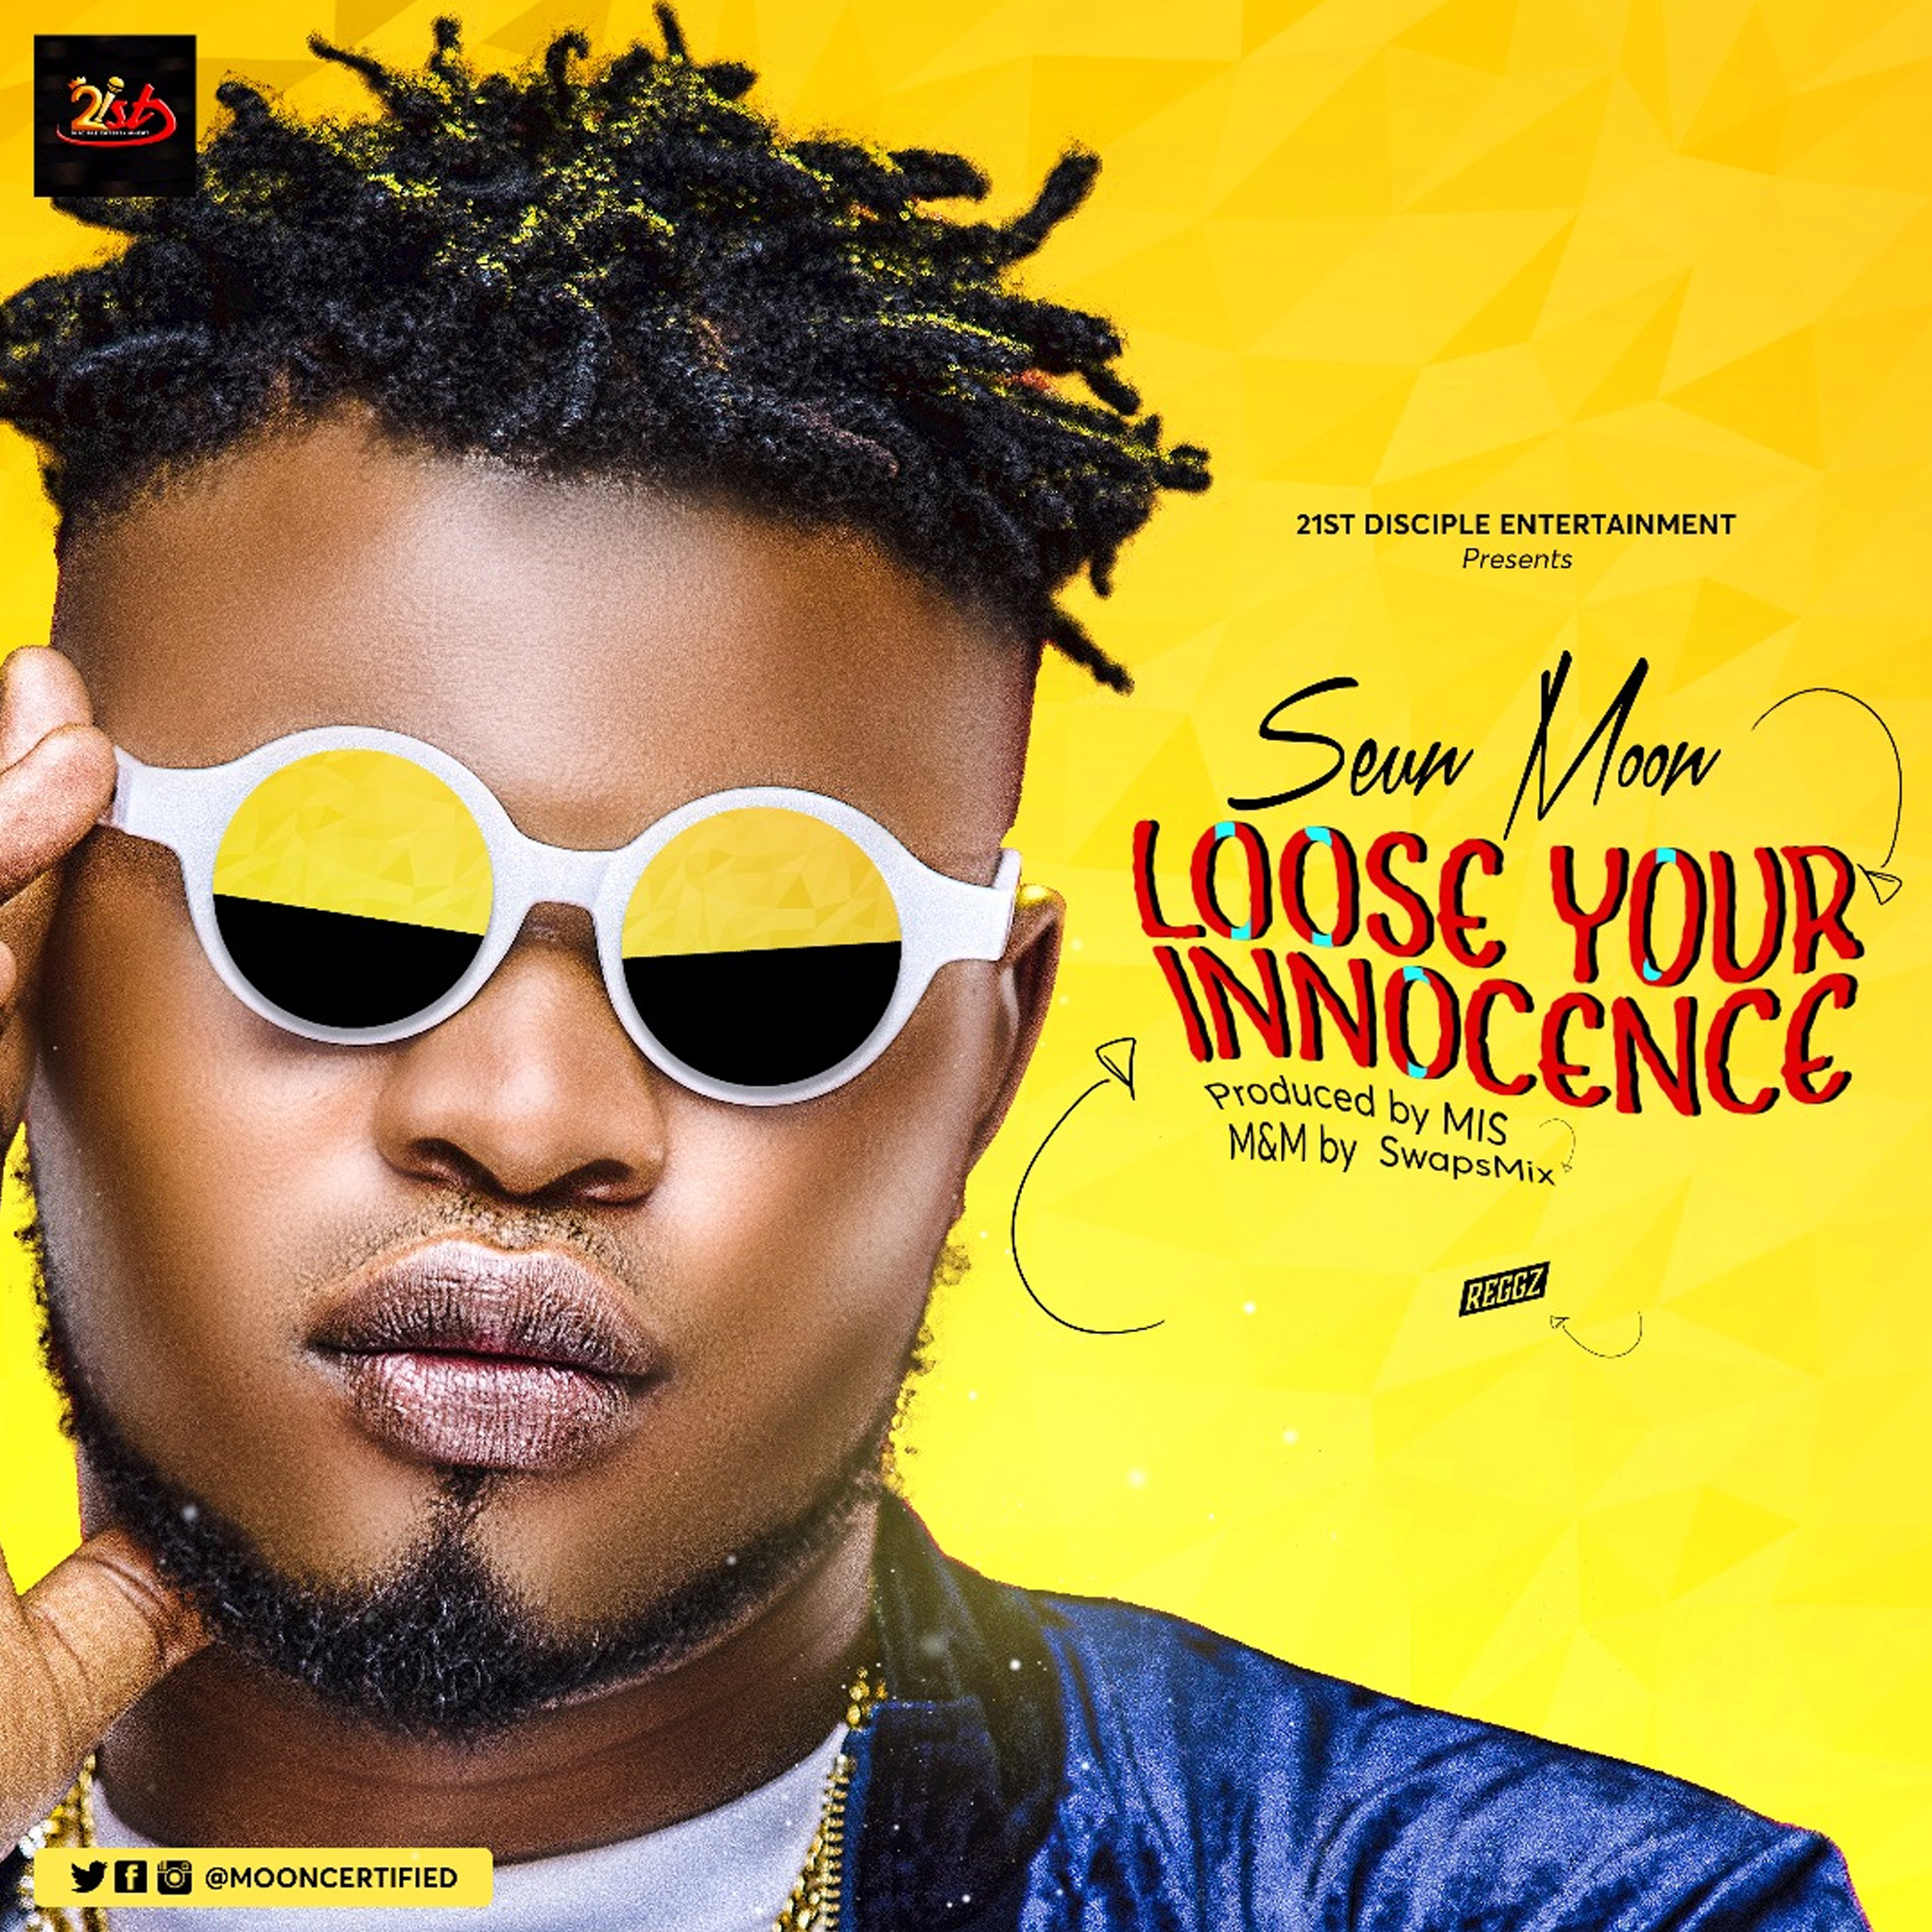 Seun Moon – Loose Your Innocence